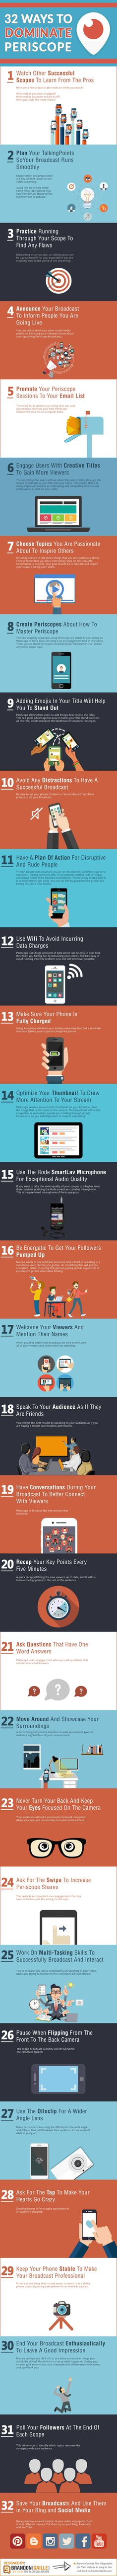 Periscope is the ultimate way to engage your audience, and these 33 tips from the pros will make you an overnight success. The most vital thing is. >>> Continue with the details at the image link. Snapchat, Internet Marketing, Online Marketing, Marketing Ideas, Four Square, Comunity Manager, Le Social, Social Media Tips, Marketing Digital